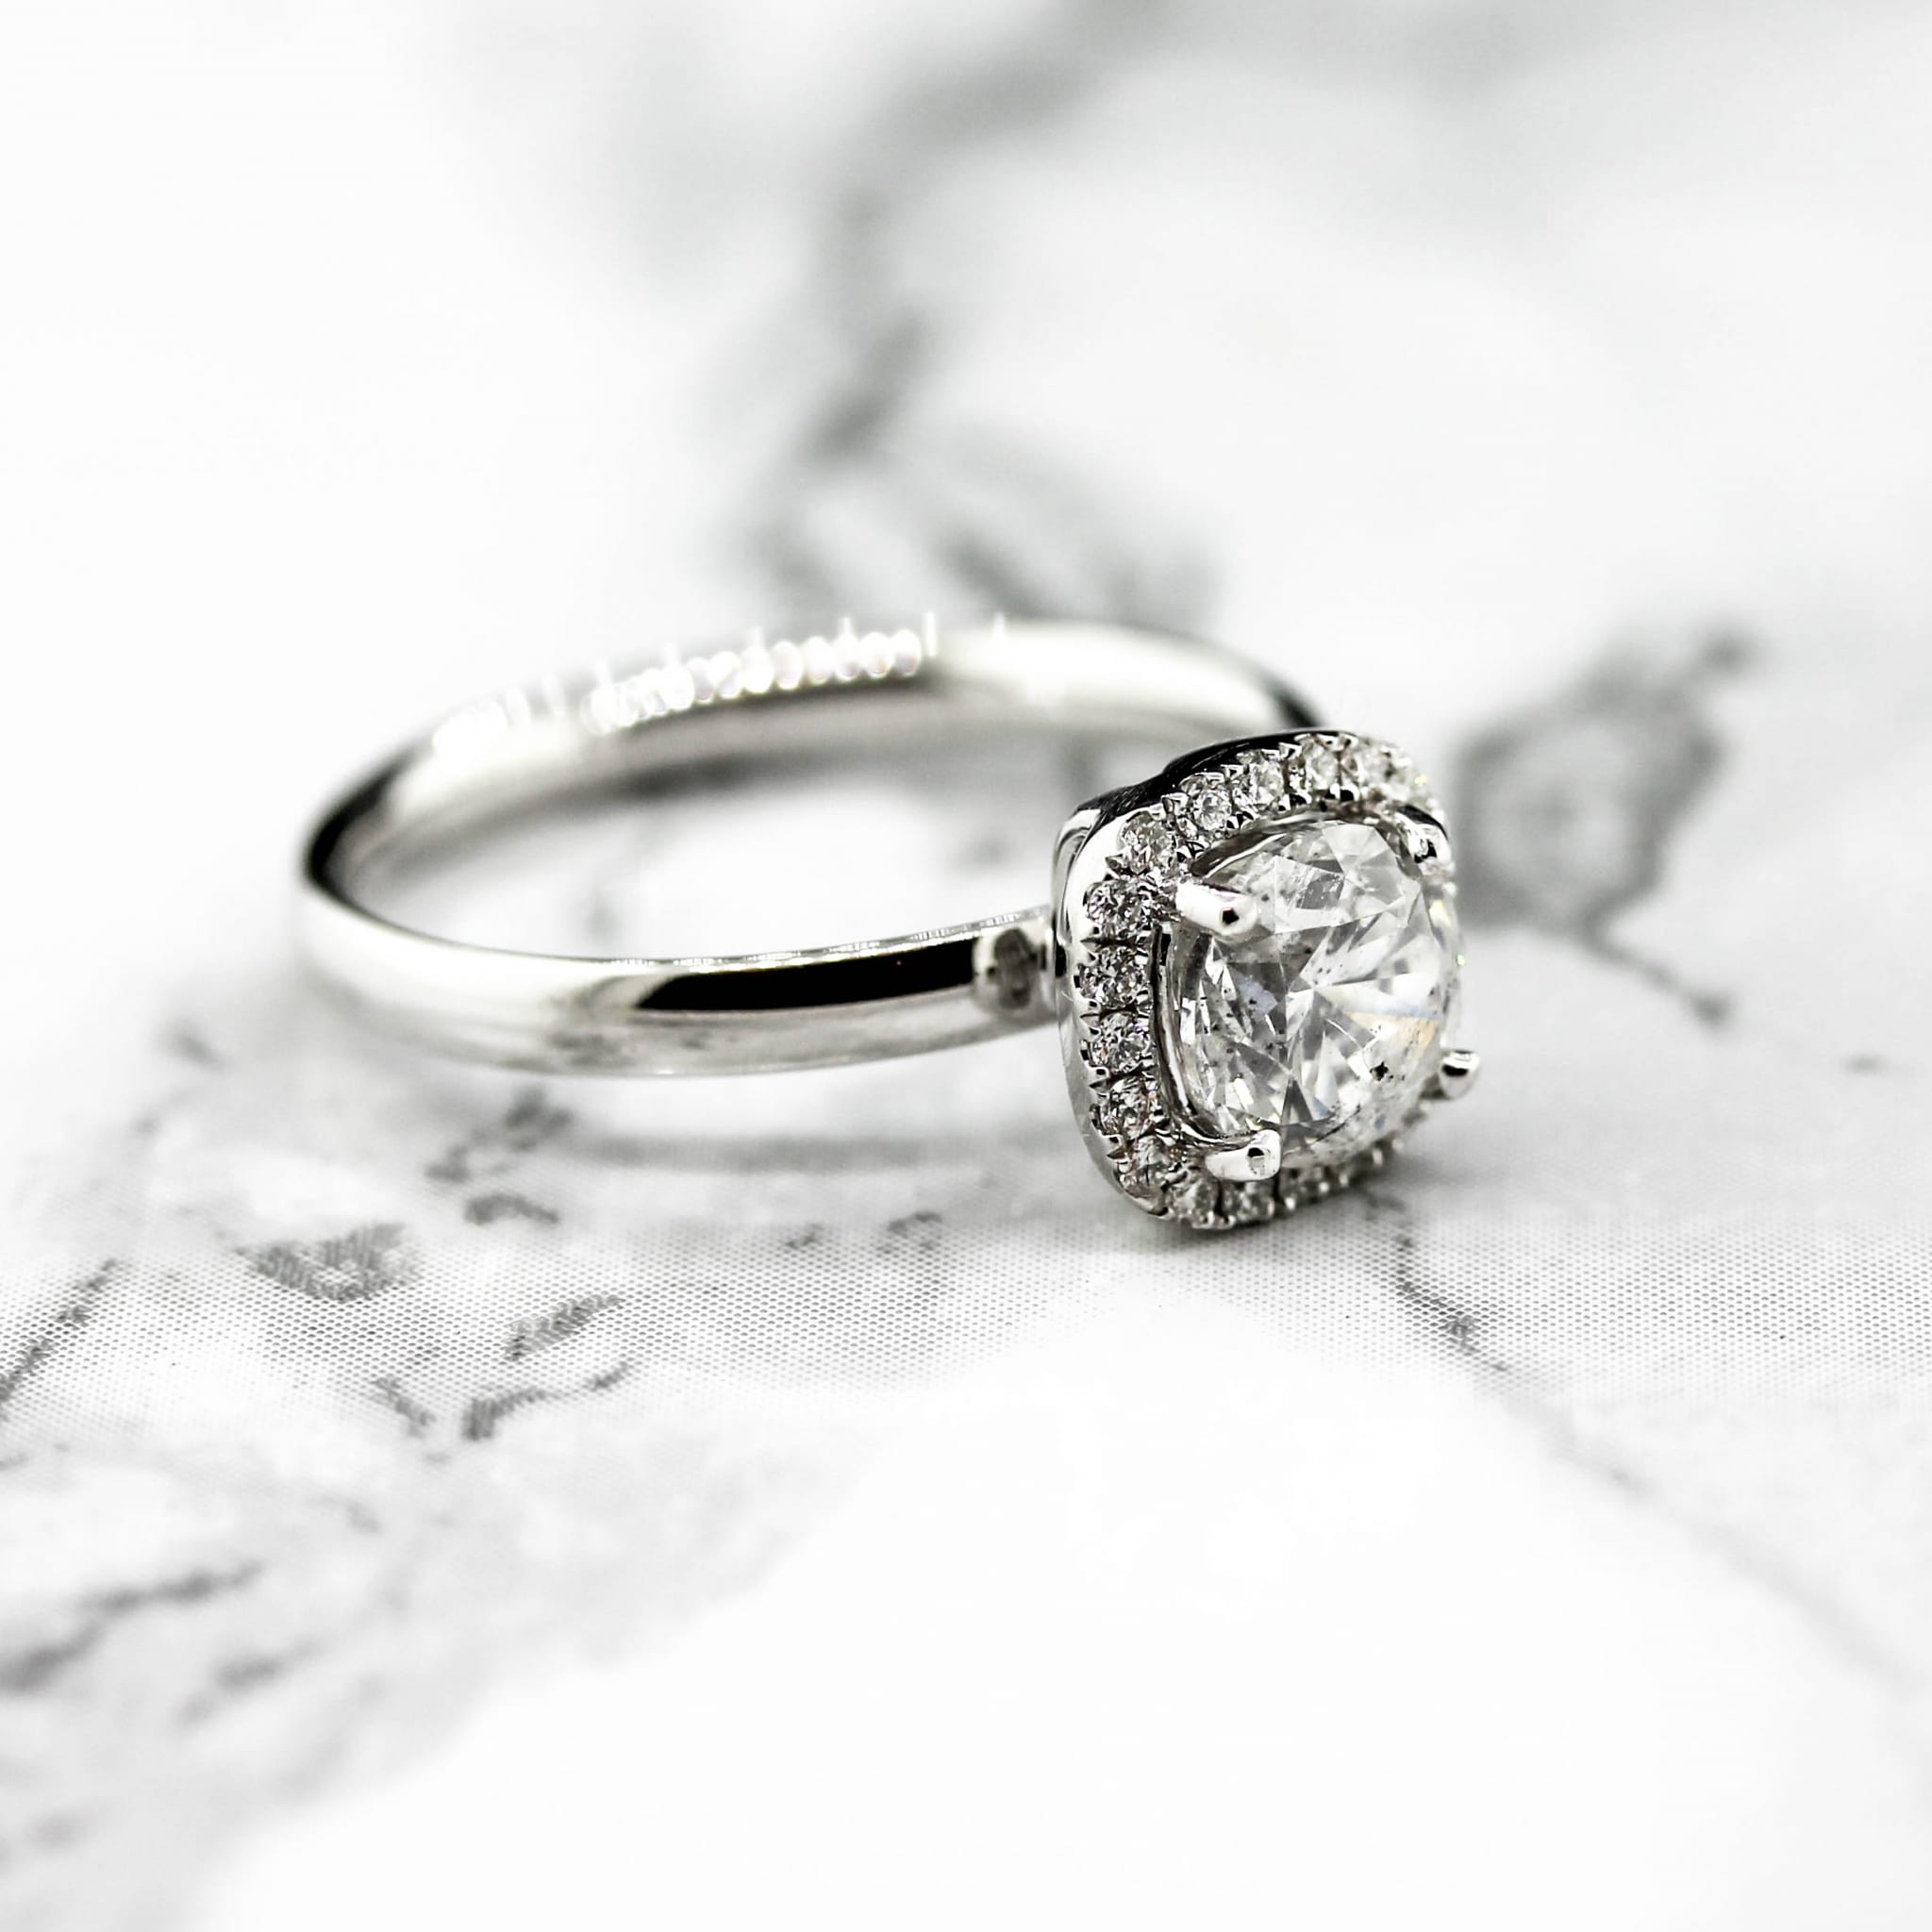 0d9a27d35 Independent jeweller seeks wholesale partner to expand lab-grown diamond  line